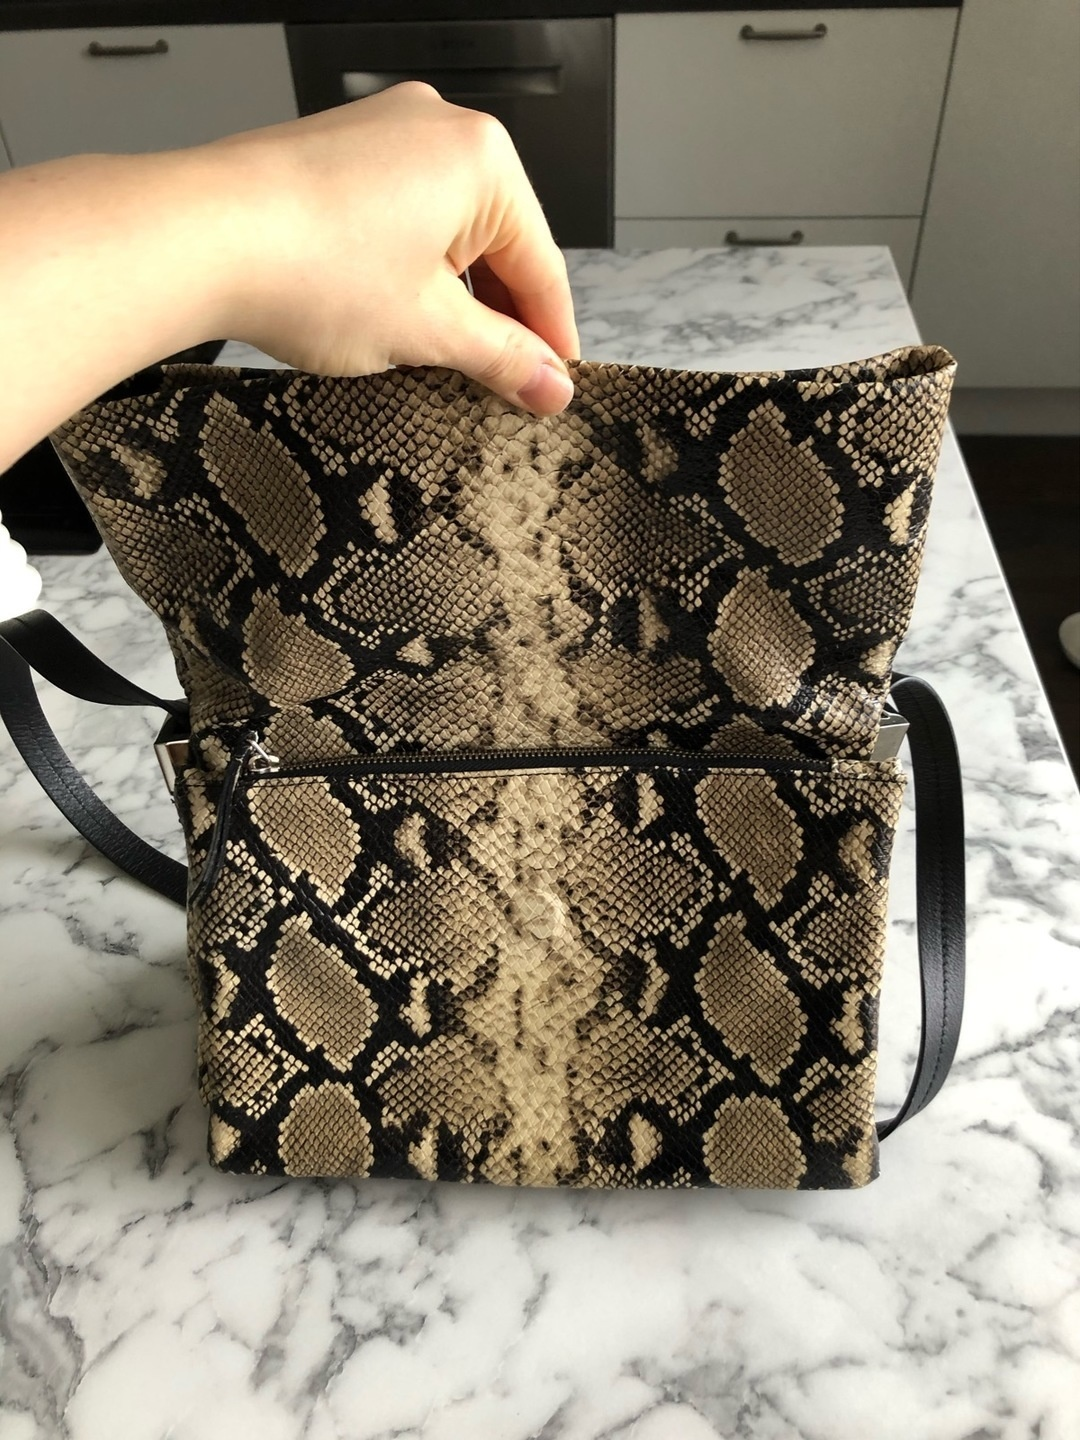 Women's bags & purses - & OTHER STORIES photo 2